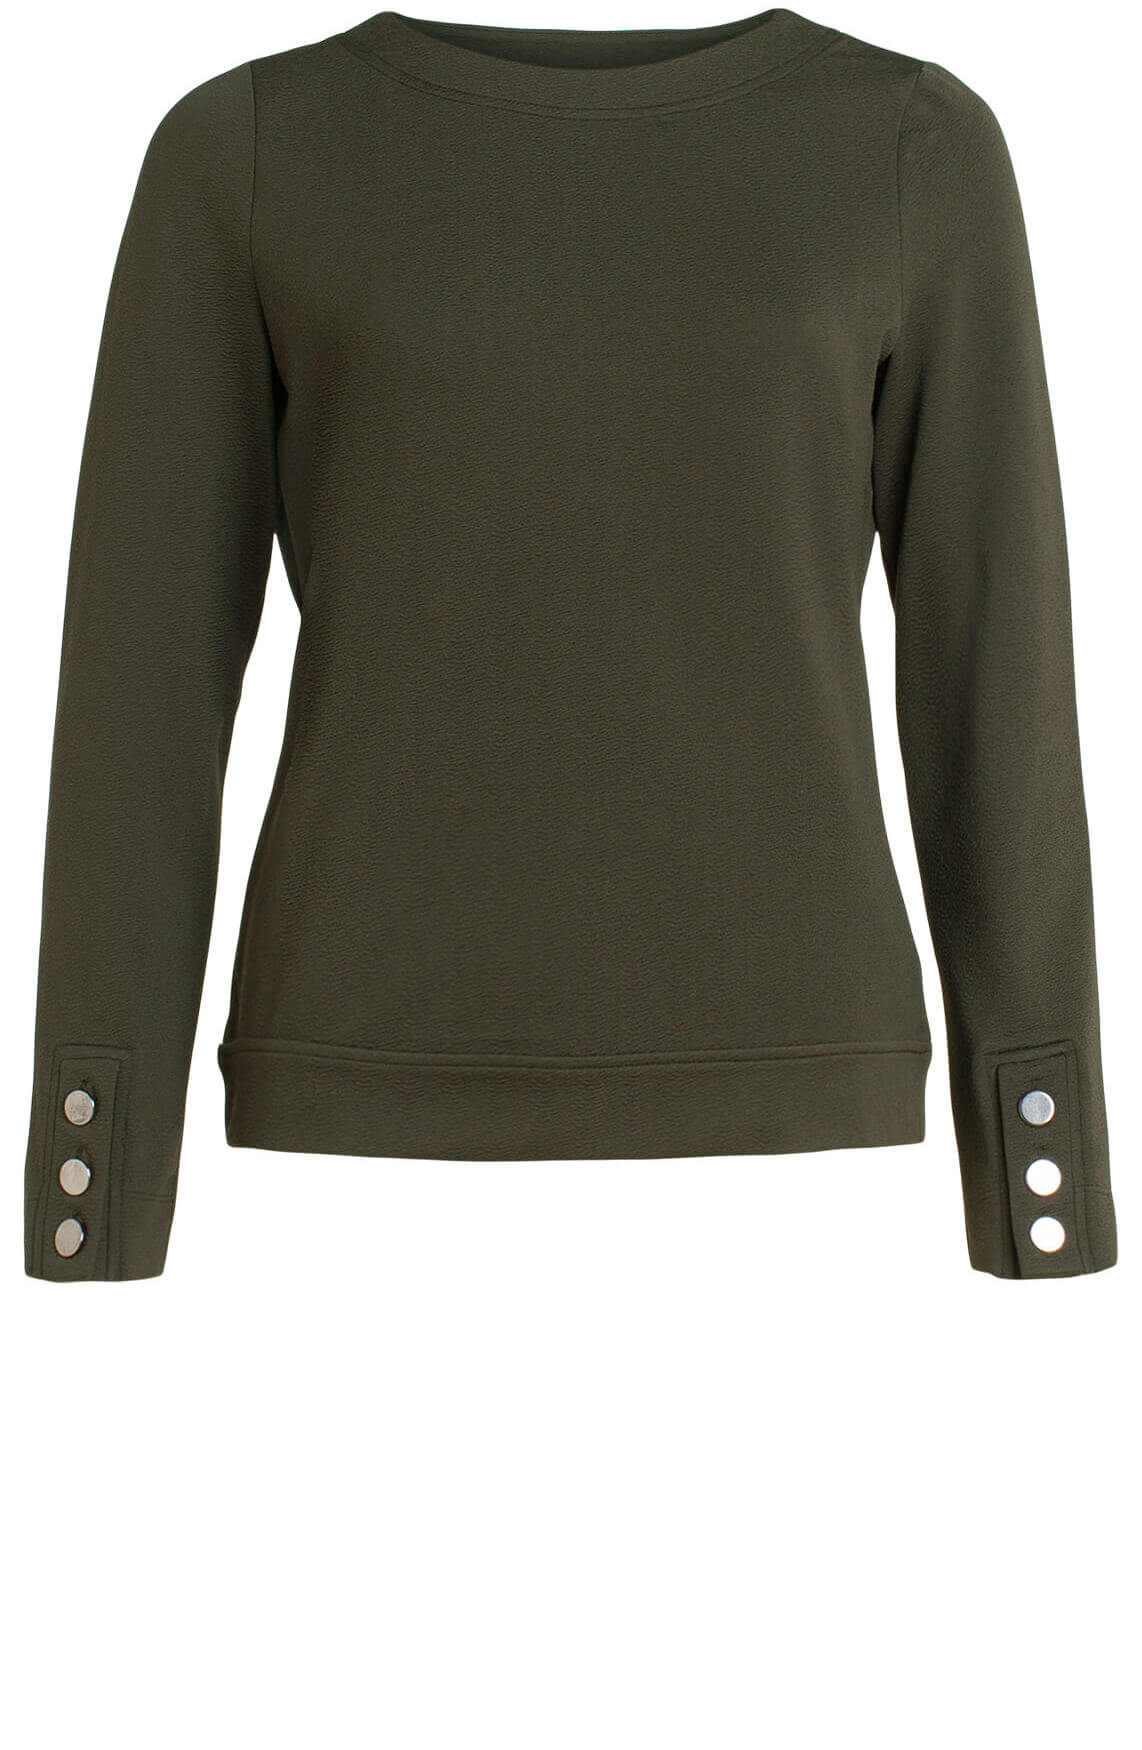 Anna Dames Sweater groen